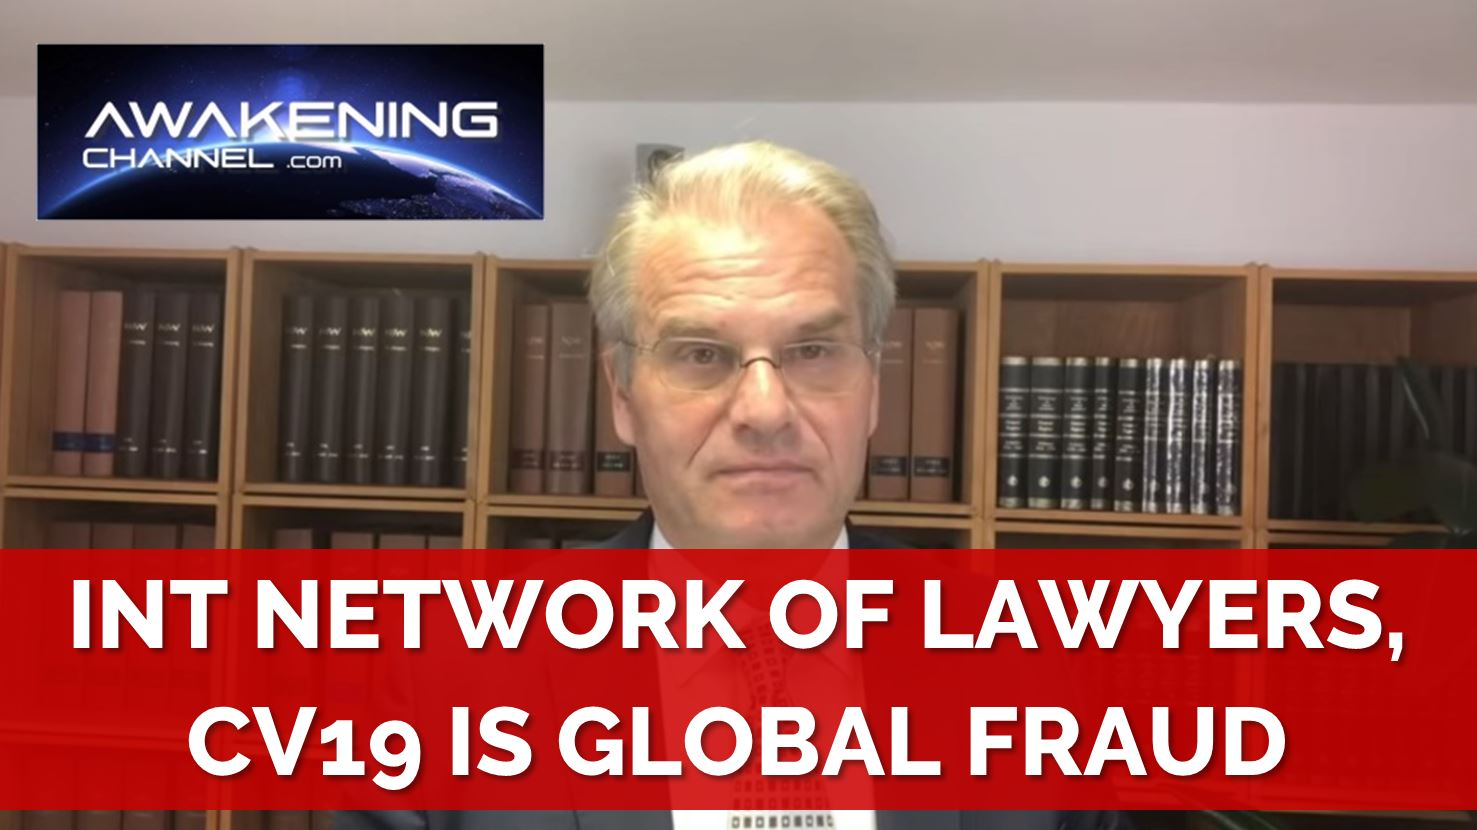 (1) International Network of Lawyers, the CV19 crisis is a Fraud and those Responsible will be Sued (Part 1/24)